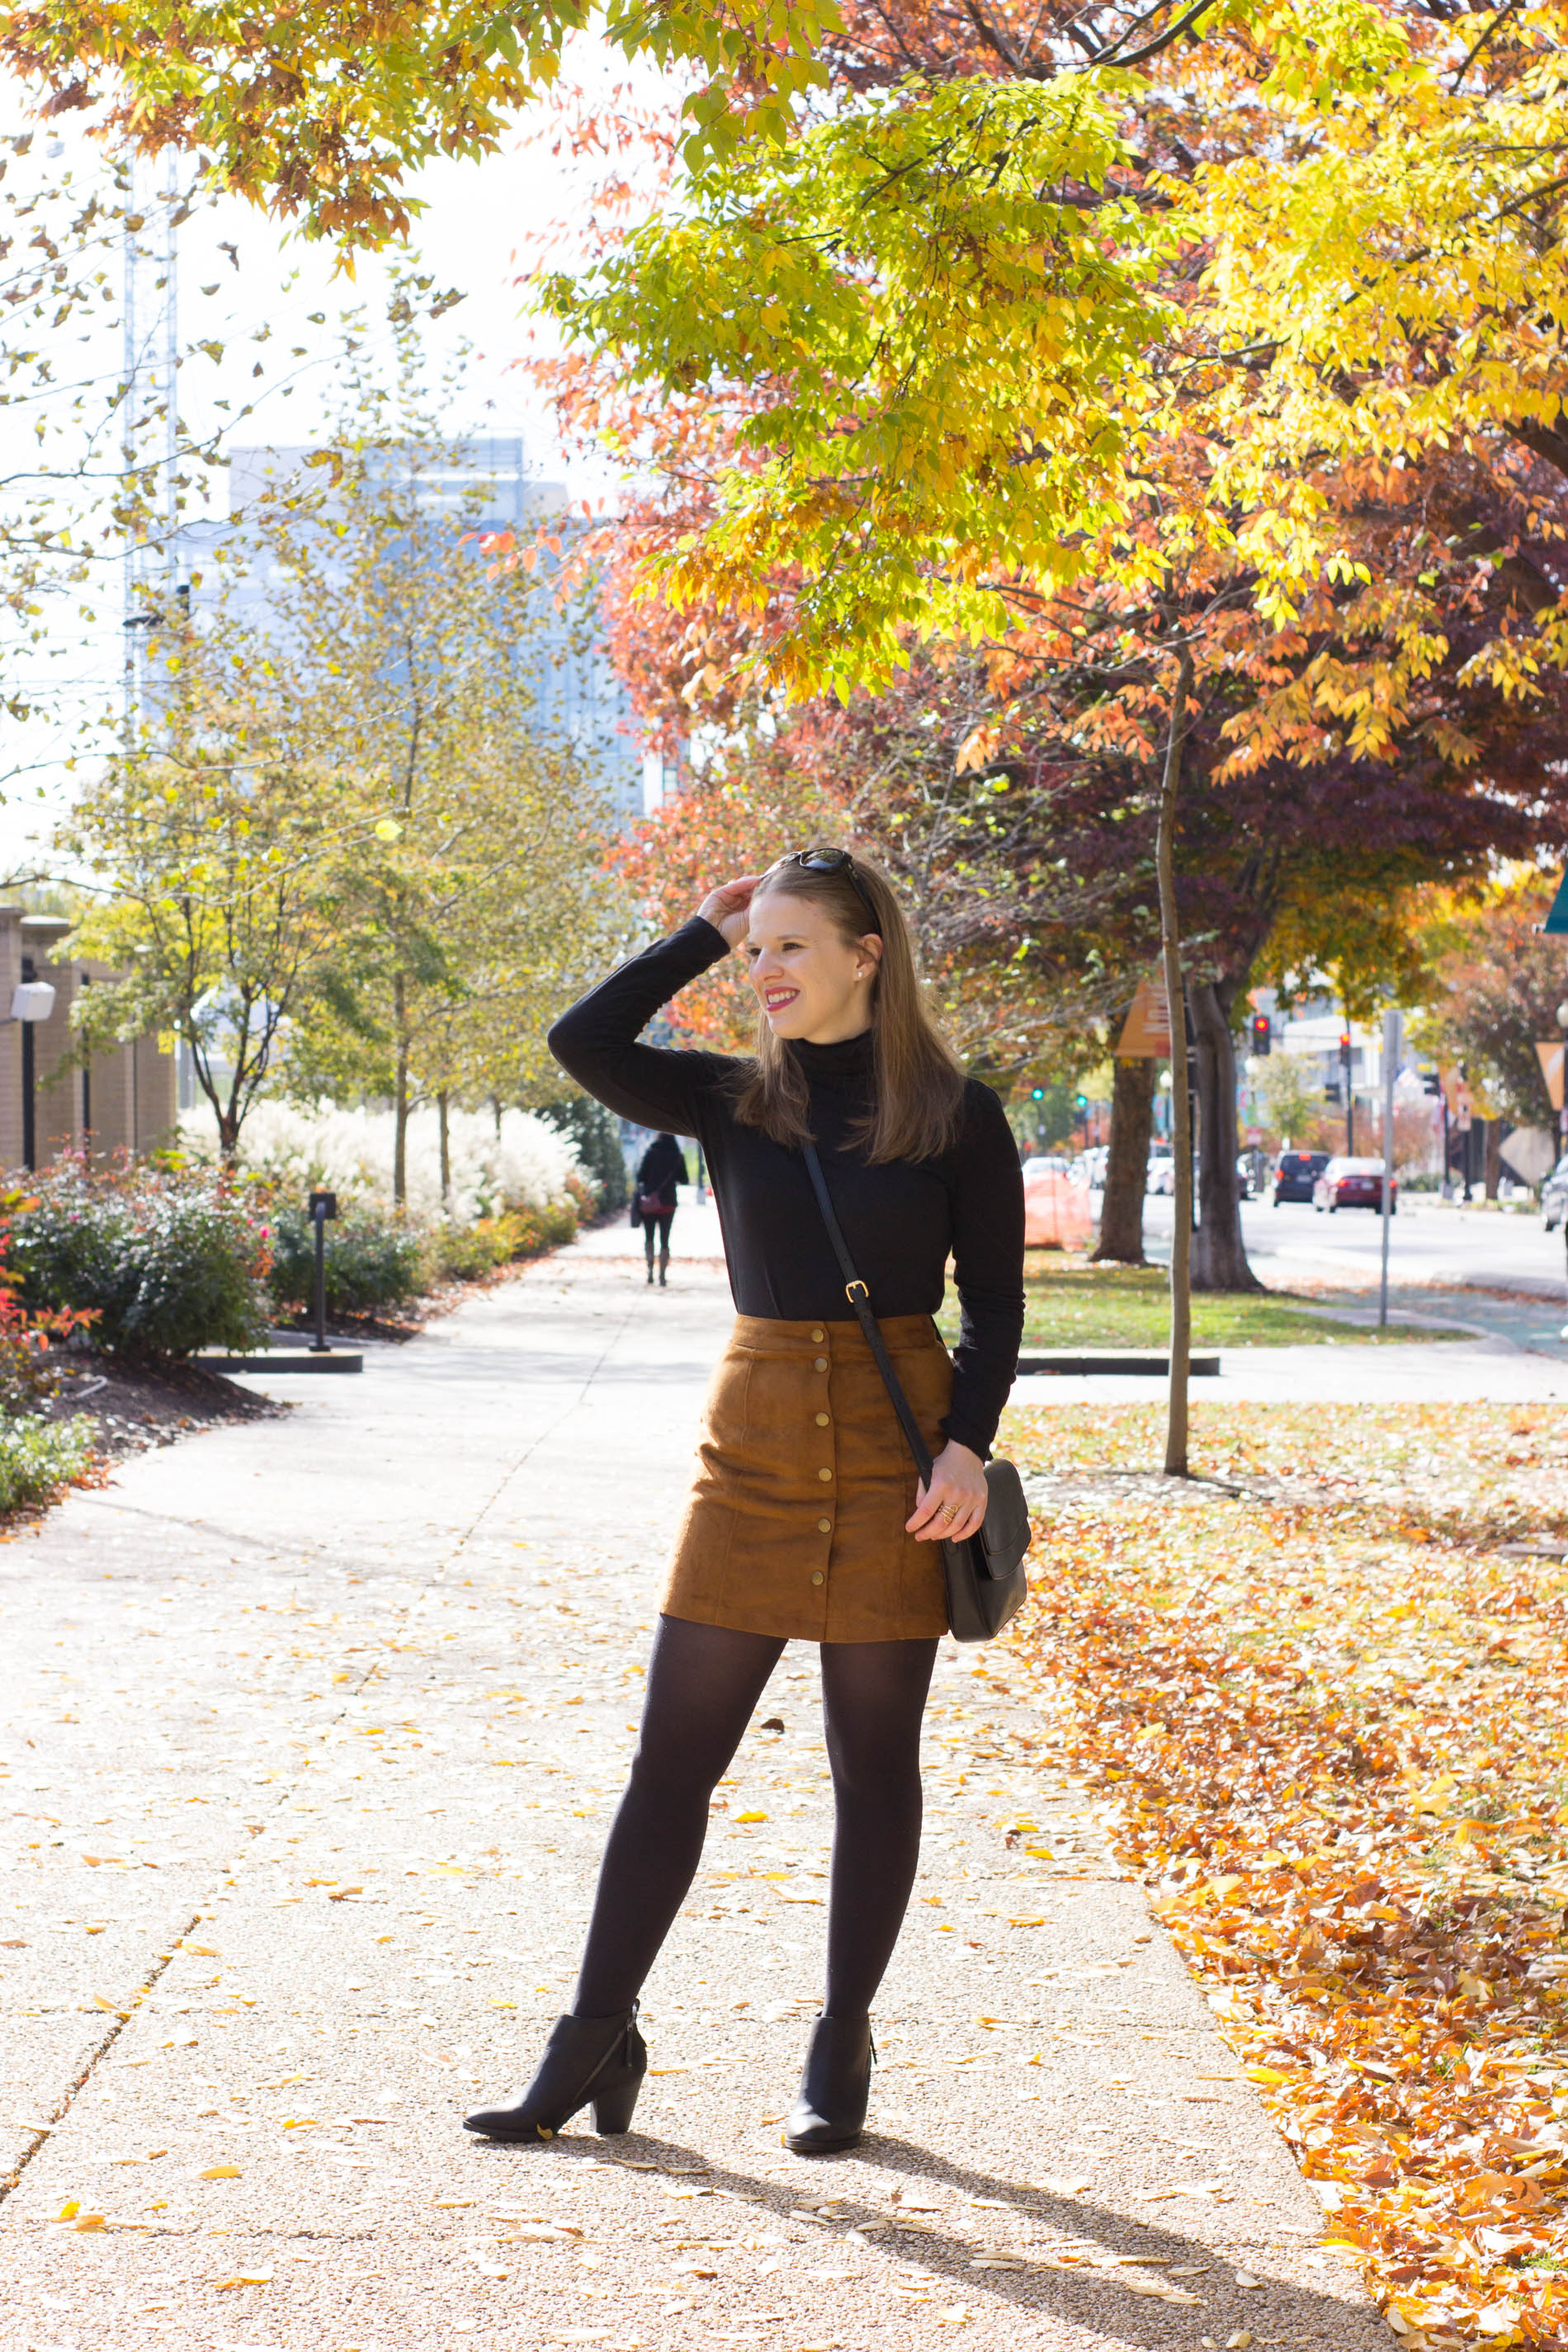 What Do You Wear to a Friendsgiving? | Something Good, @danaerinw , thanksgiving, outfits, holiday outfits, women's clothing, fashion, style, suede skirt, button front skirt, black turtleneck, turtleneck, j.crew, crossbody bag, black tights, black ankle boots, booties, fall outfits, thanksgiving outfits, holiday style